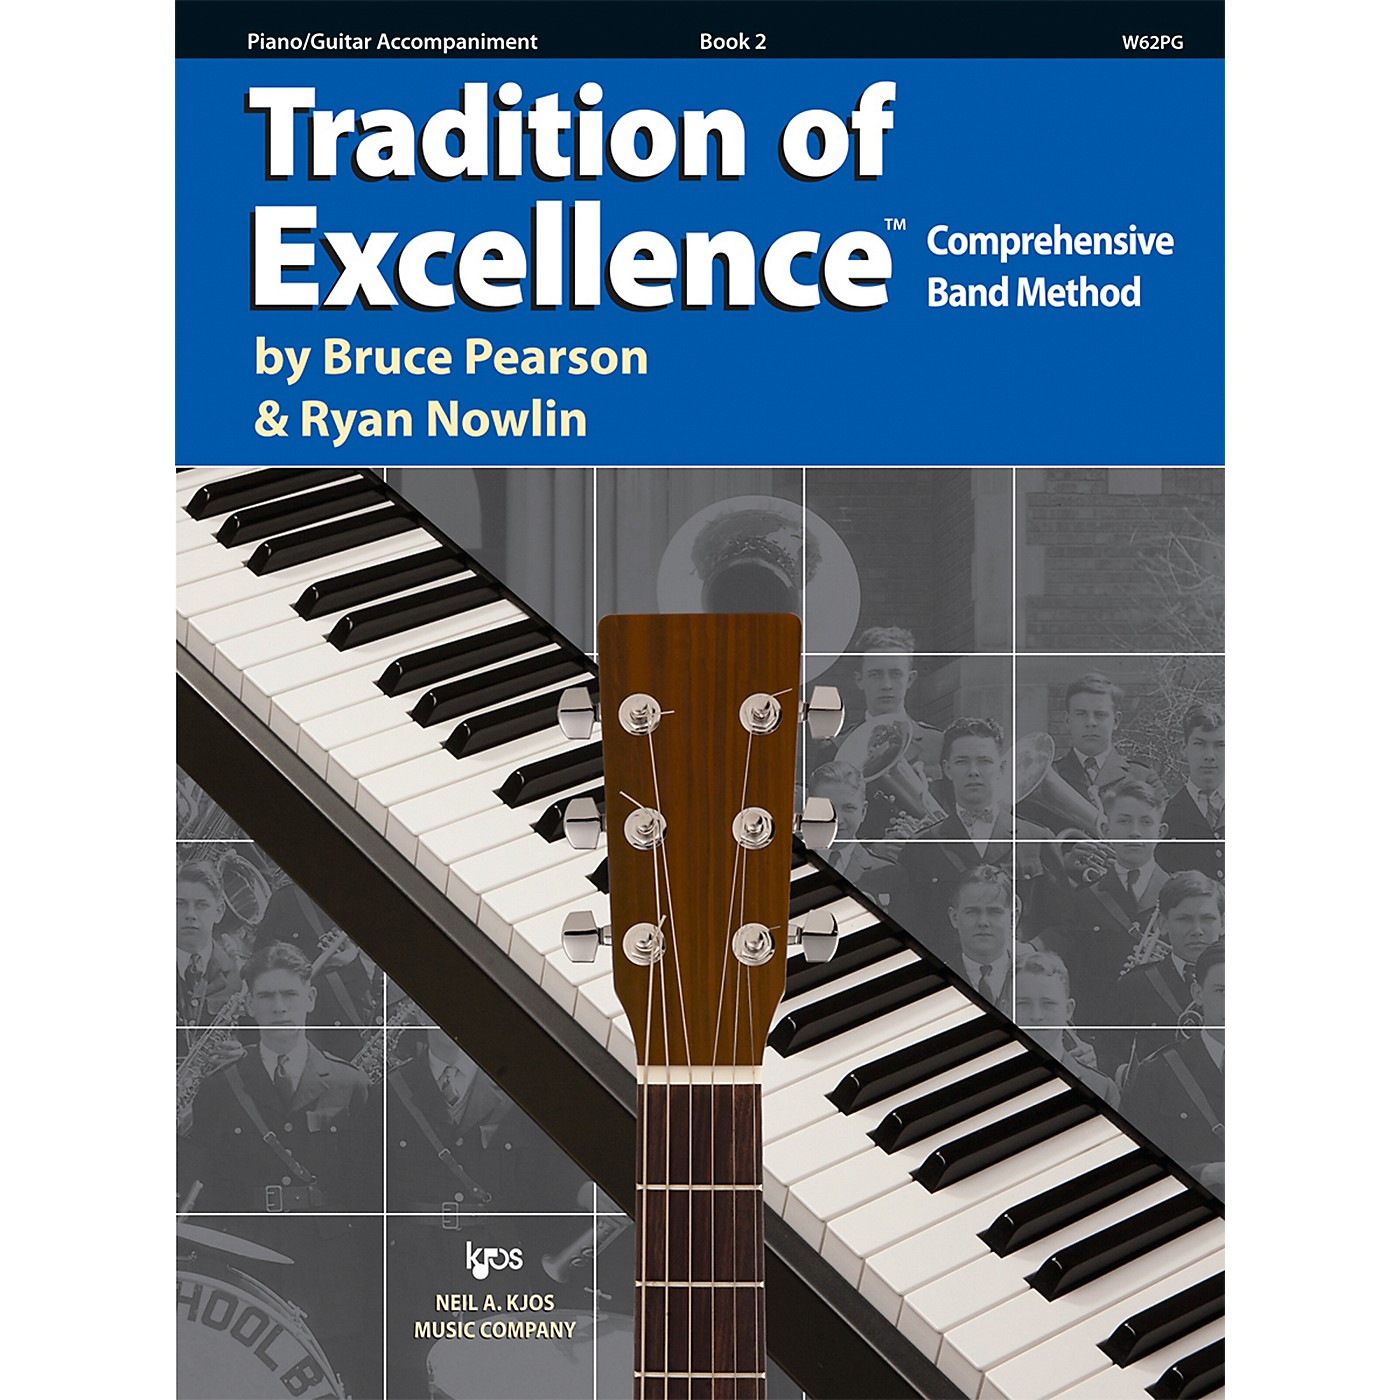 KJOS Tradition Of Excellence Book 2 for Piano / Guitar thumbnail